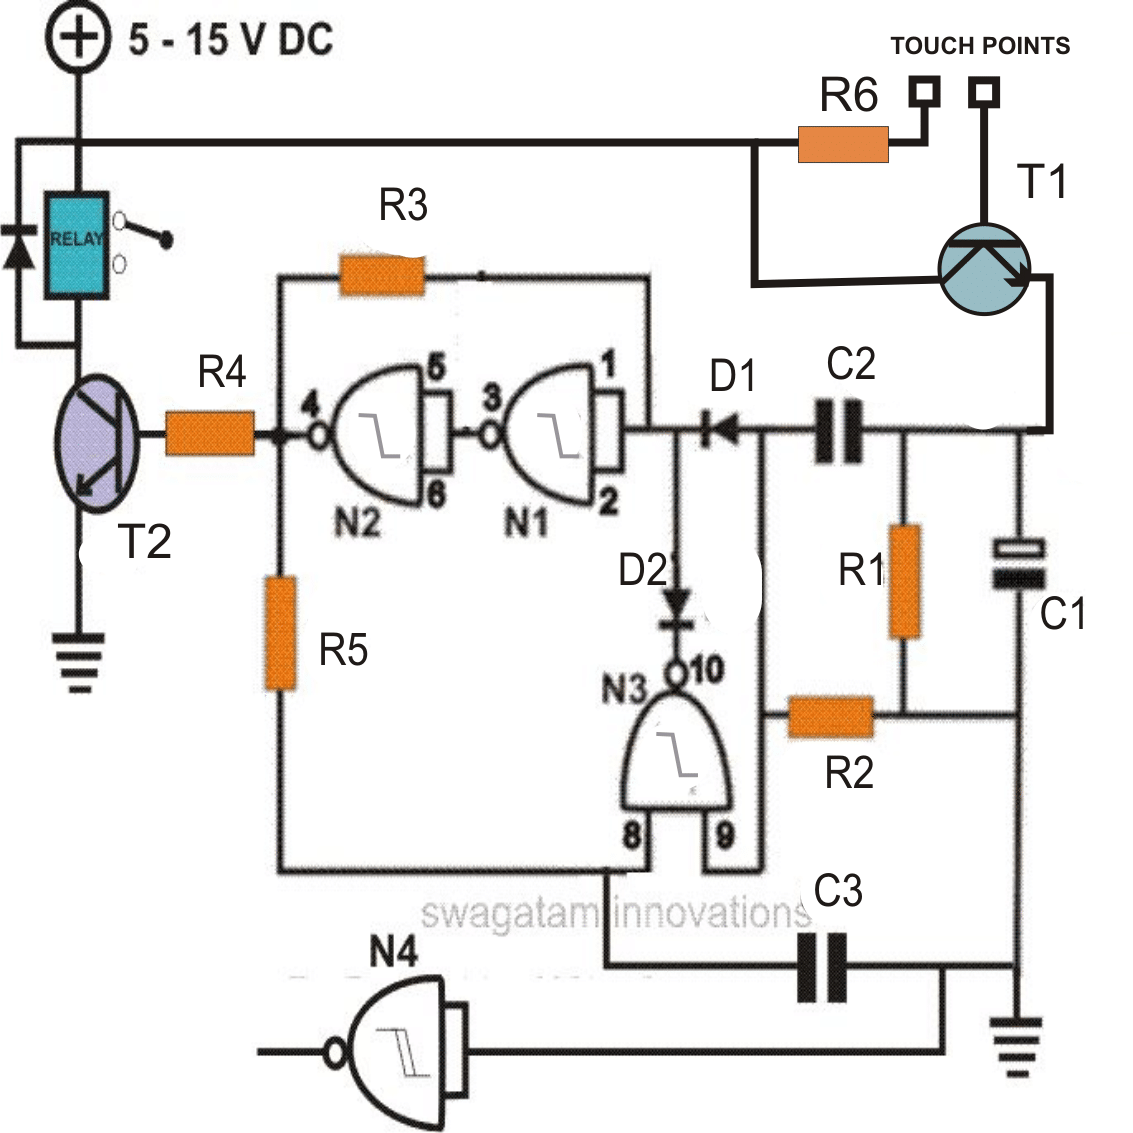 How To Make A Simple Touch Sensitive Switch Circuit